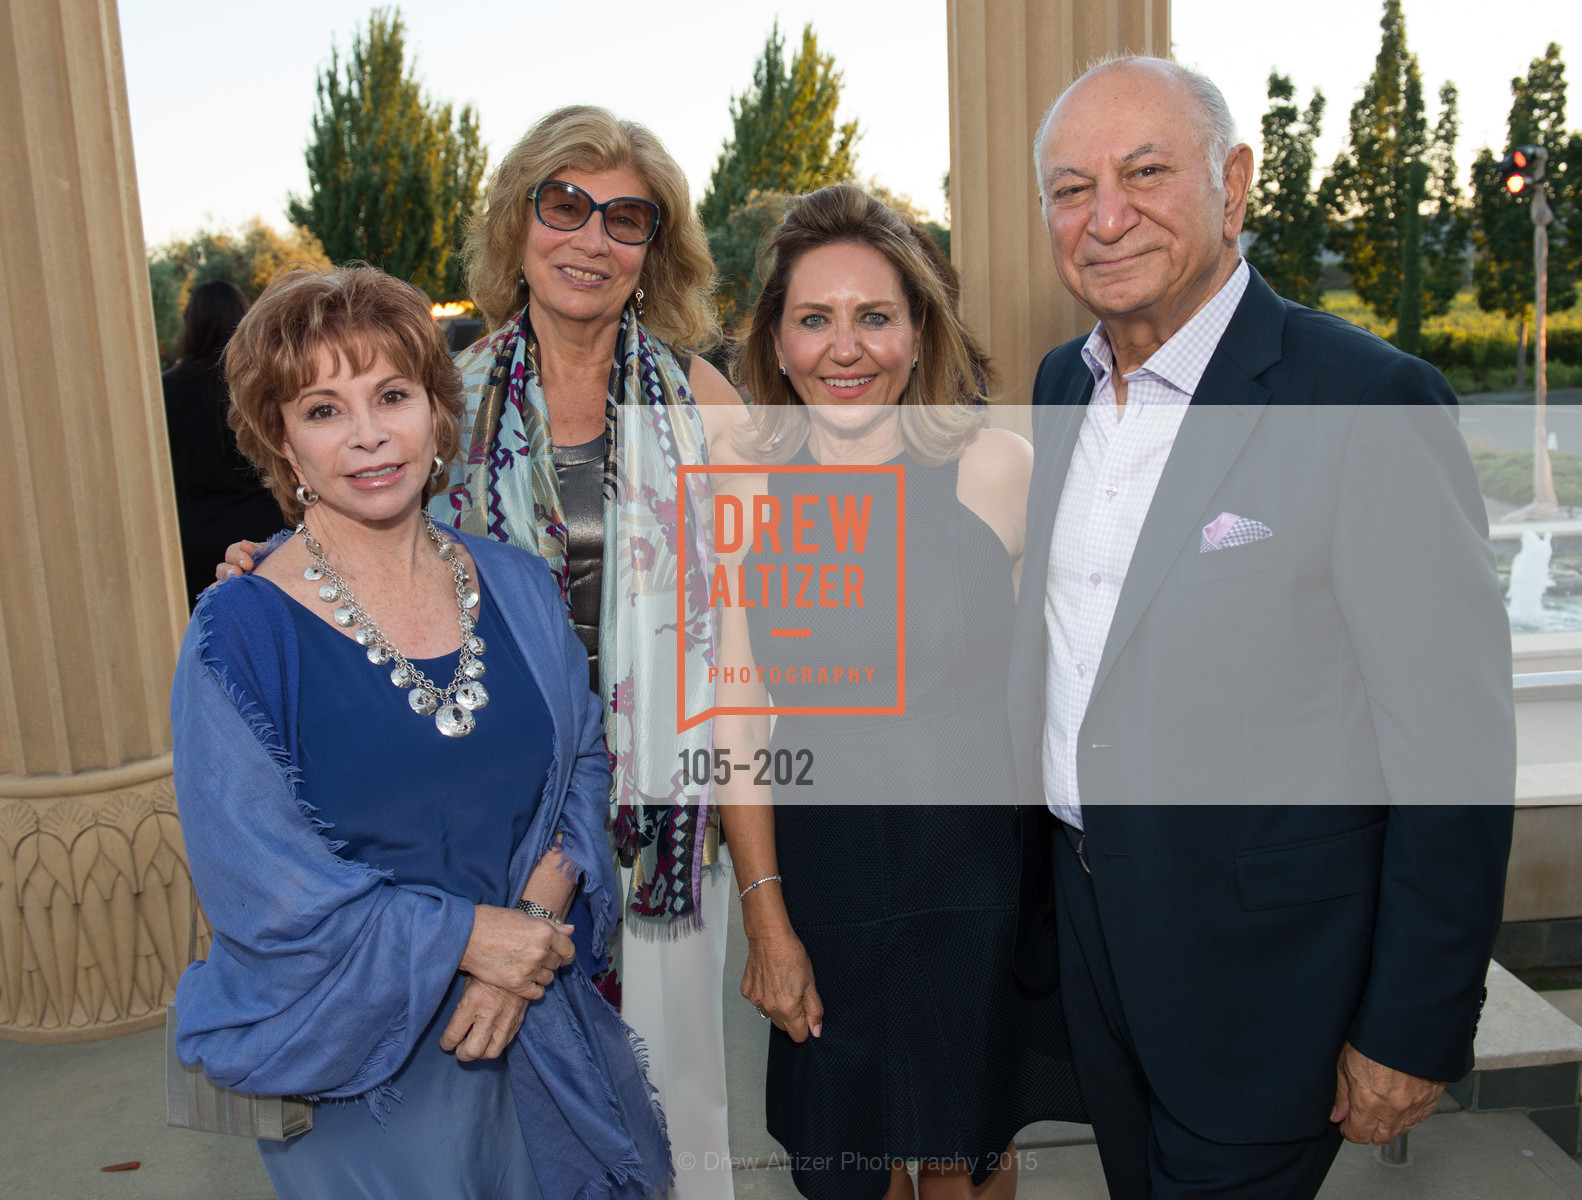 Isabel Allende, Valeria Huneeus, Shahpar Khaledi, Darioush Khaledi, Festival del Sole Patron Dinner at Darioush Winery, Darioush Winery. 4240 Silverado Trail, July 24th, 2015,Drew Altizer, Drew Altizer Photography, full-service event agency, private events, San Francisco photographer, photographer California